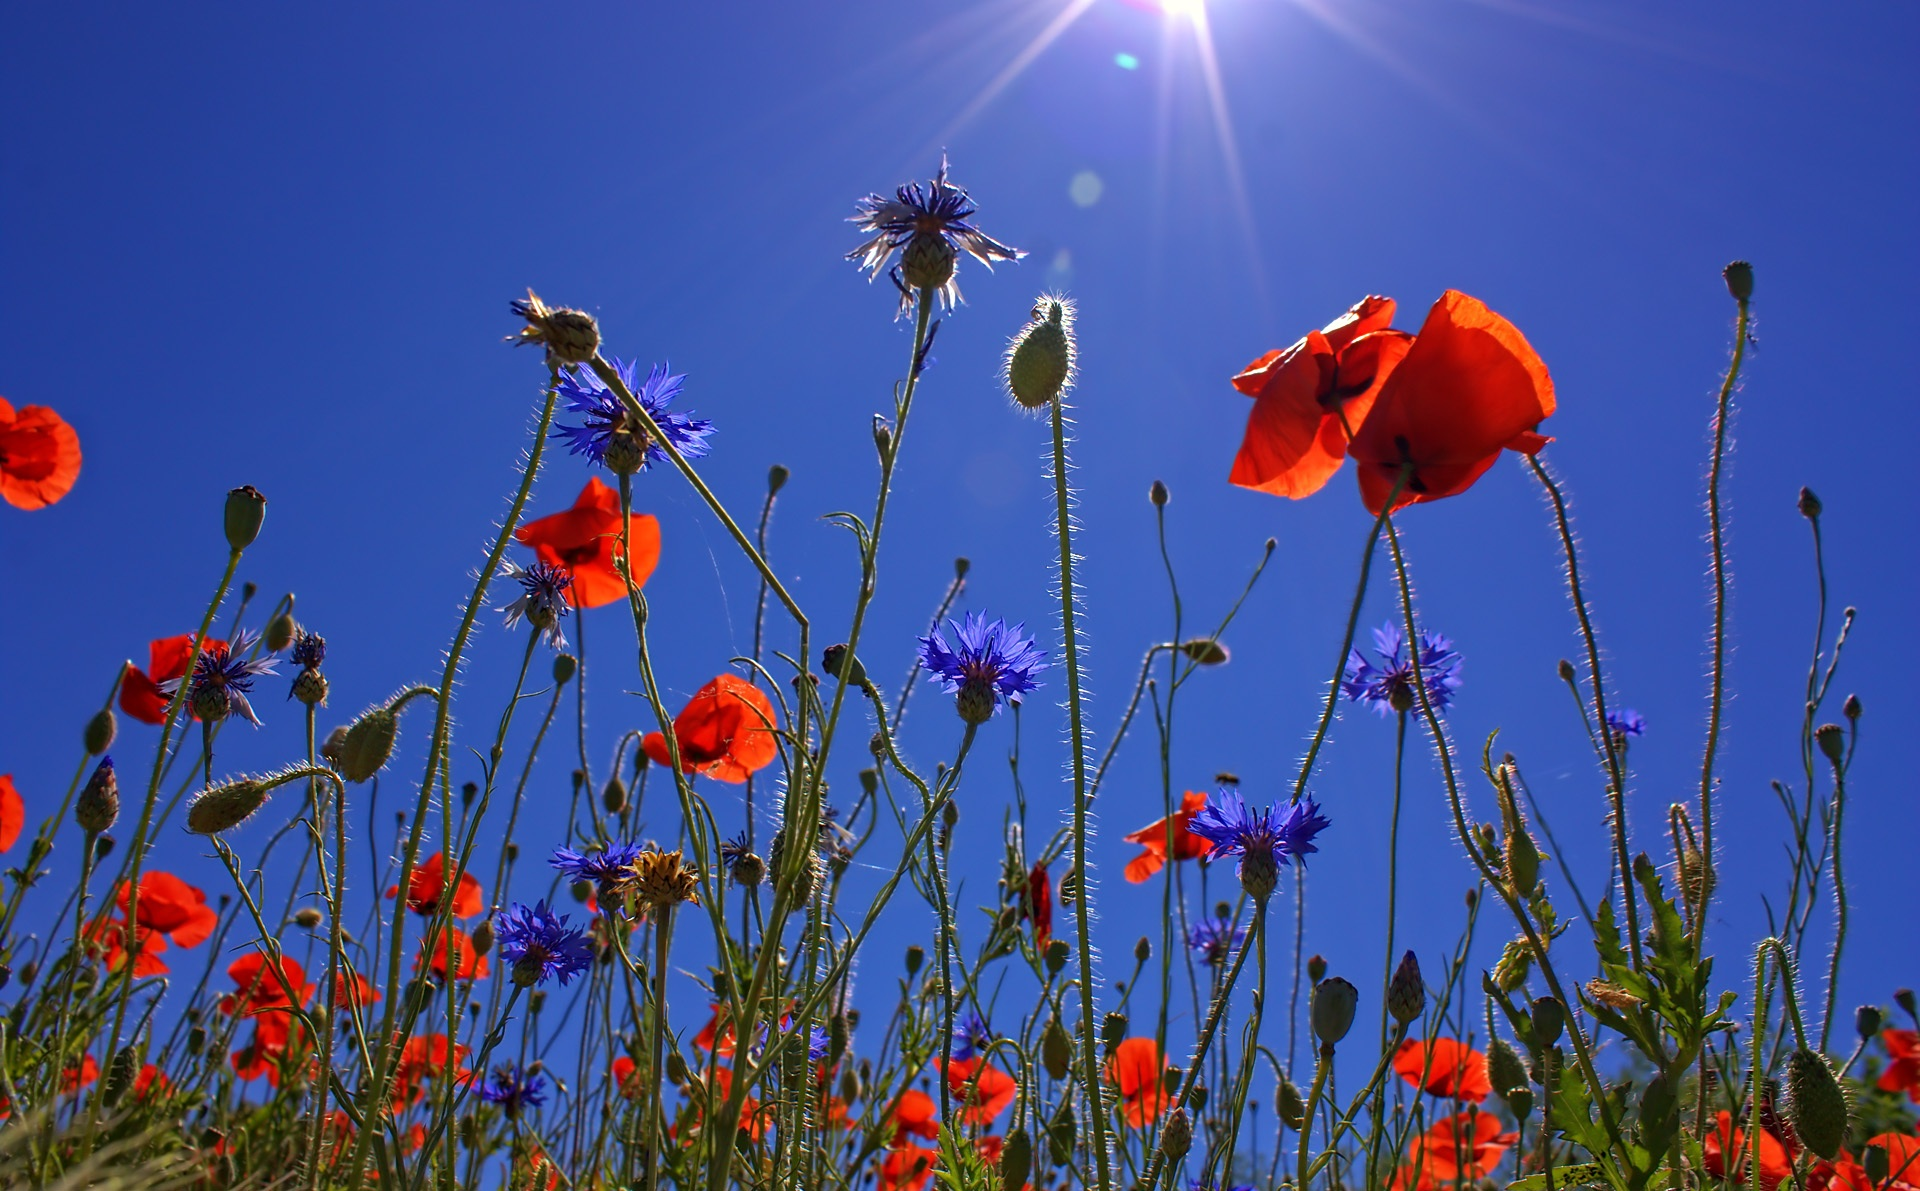 field-of-poppies-807871